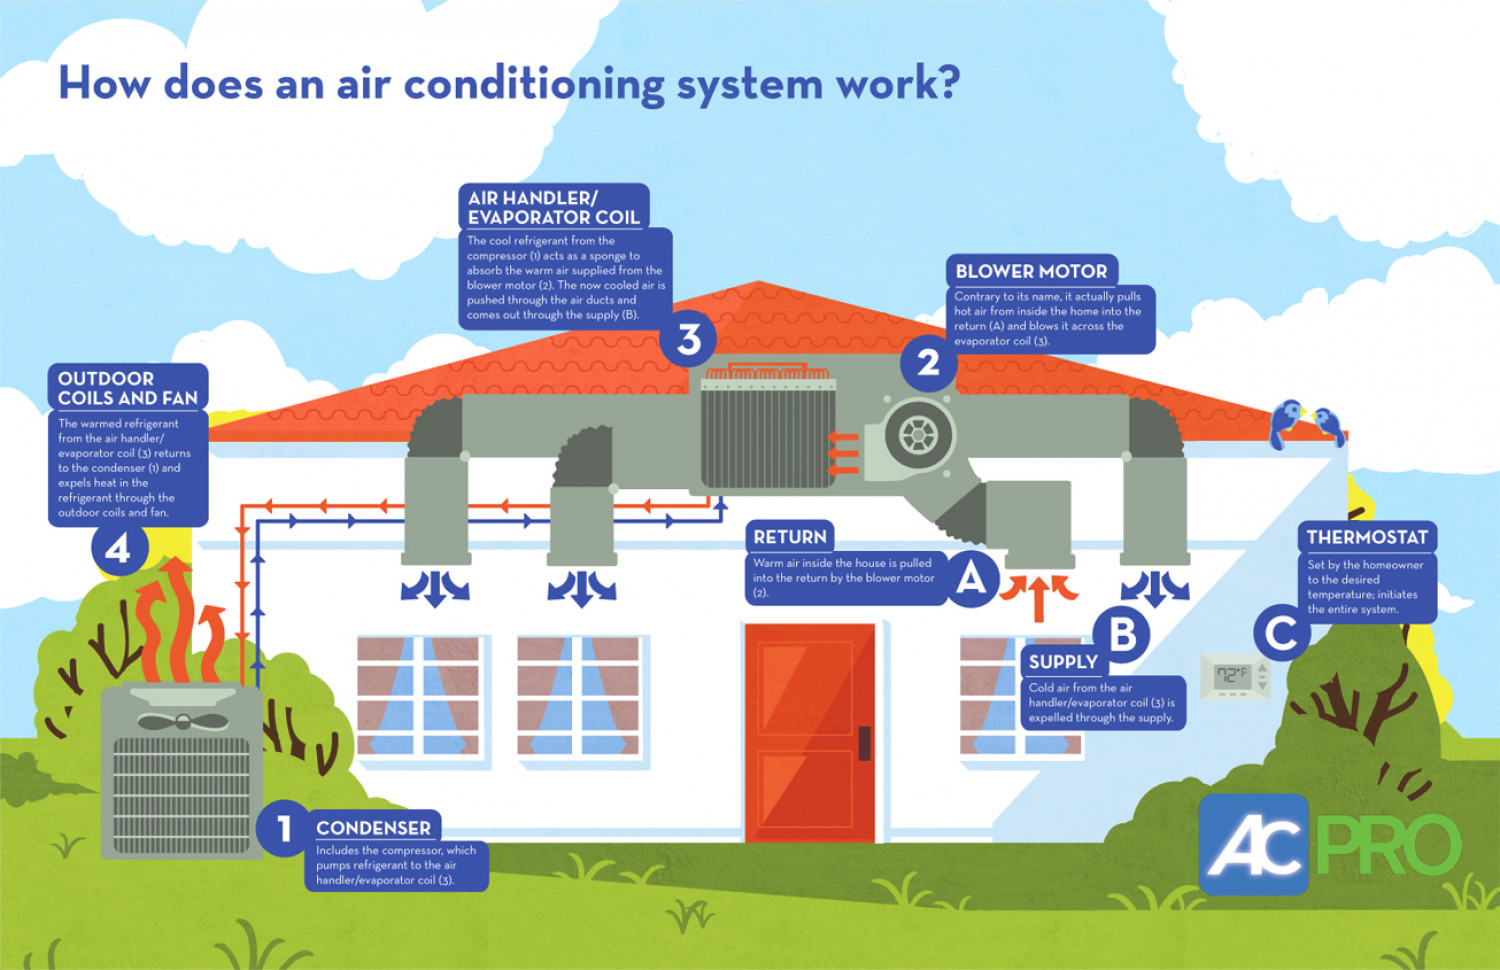 how does an air conditioning system work? | visual.ly